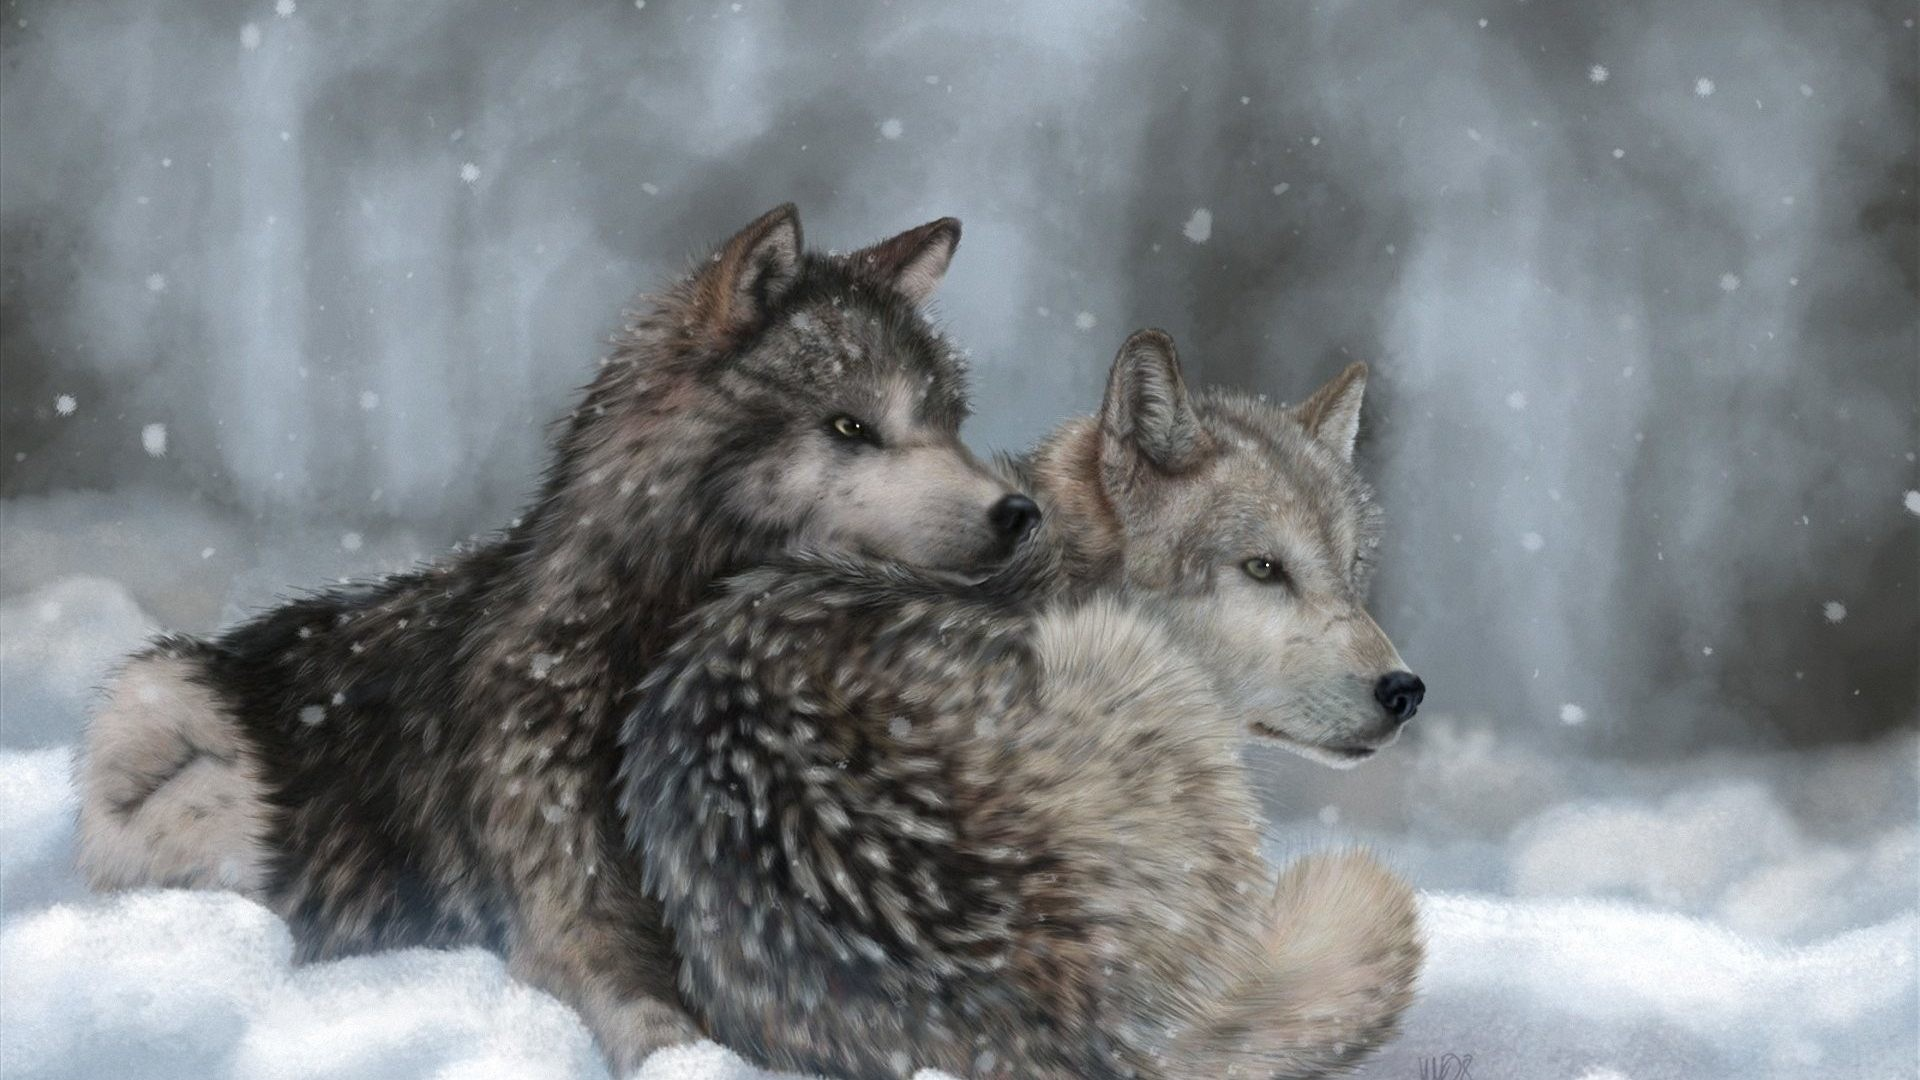 Dogs – Wolves Art Winter Lying Wolf Snow Dogs Surfing Images for HD 16:9